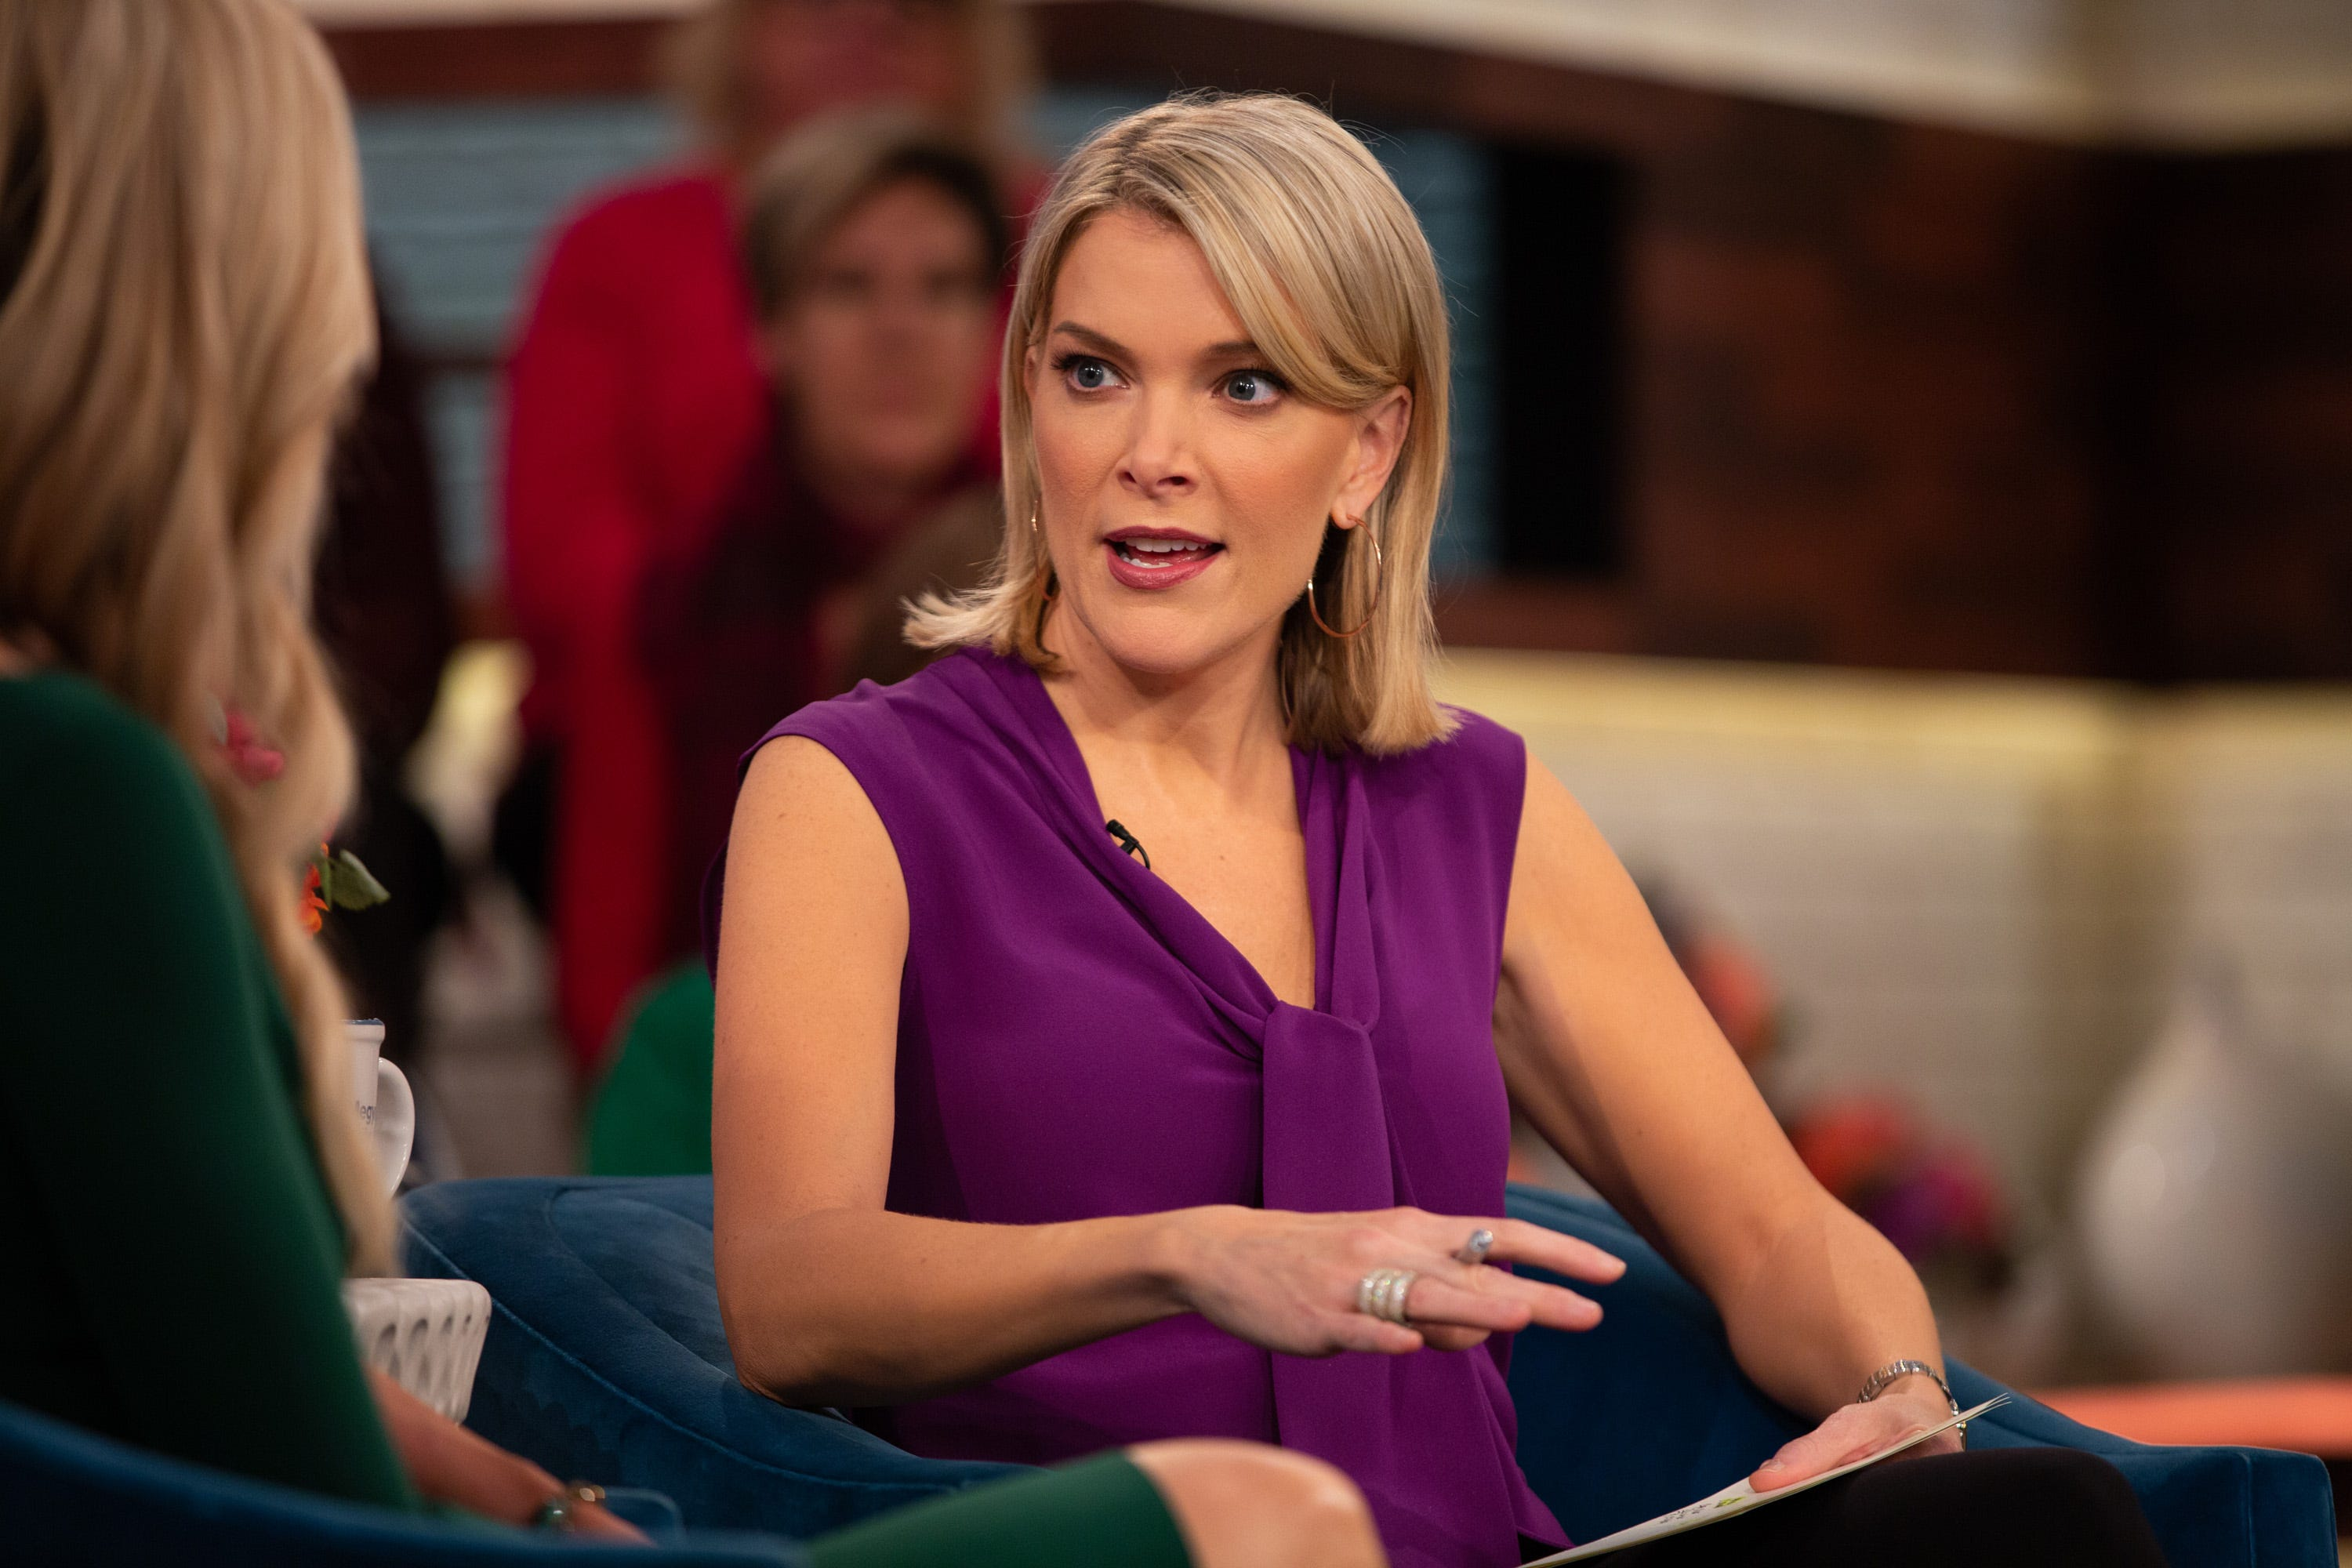 Images Megyn Kelly nudes (35 photo), Topless, Paparazzi, Twitter, legs 2018